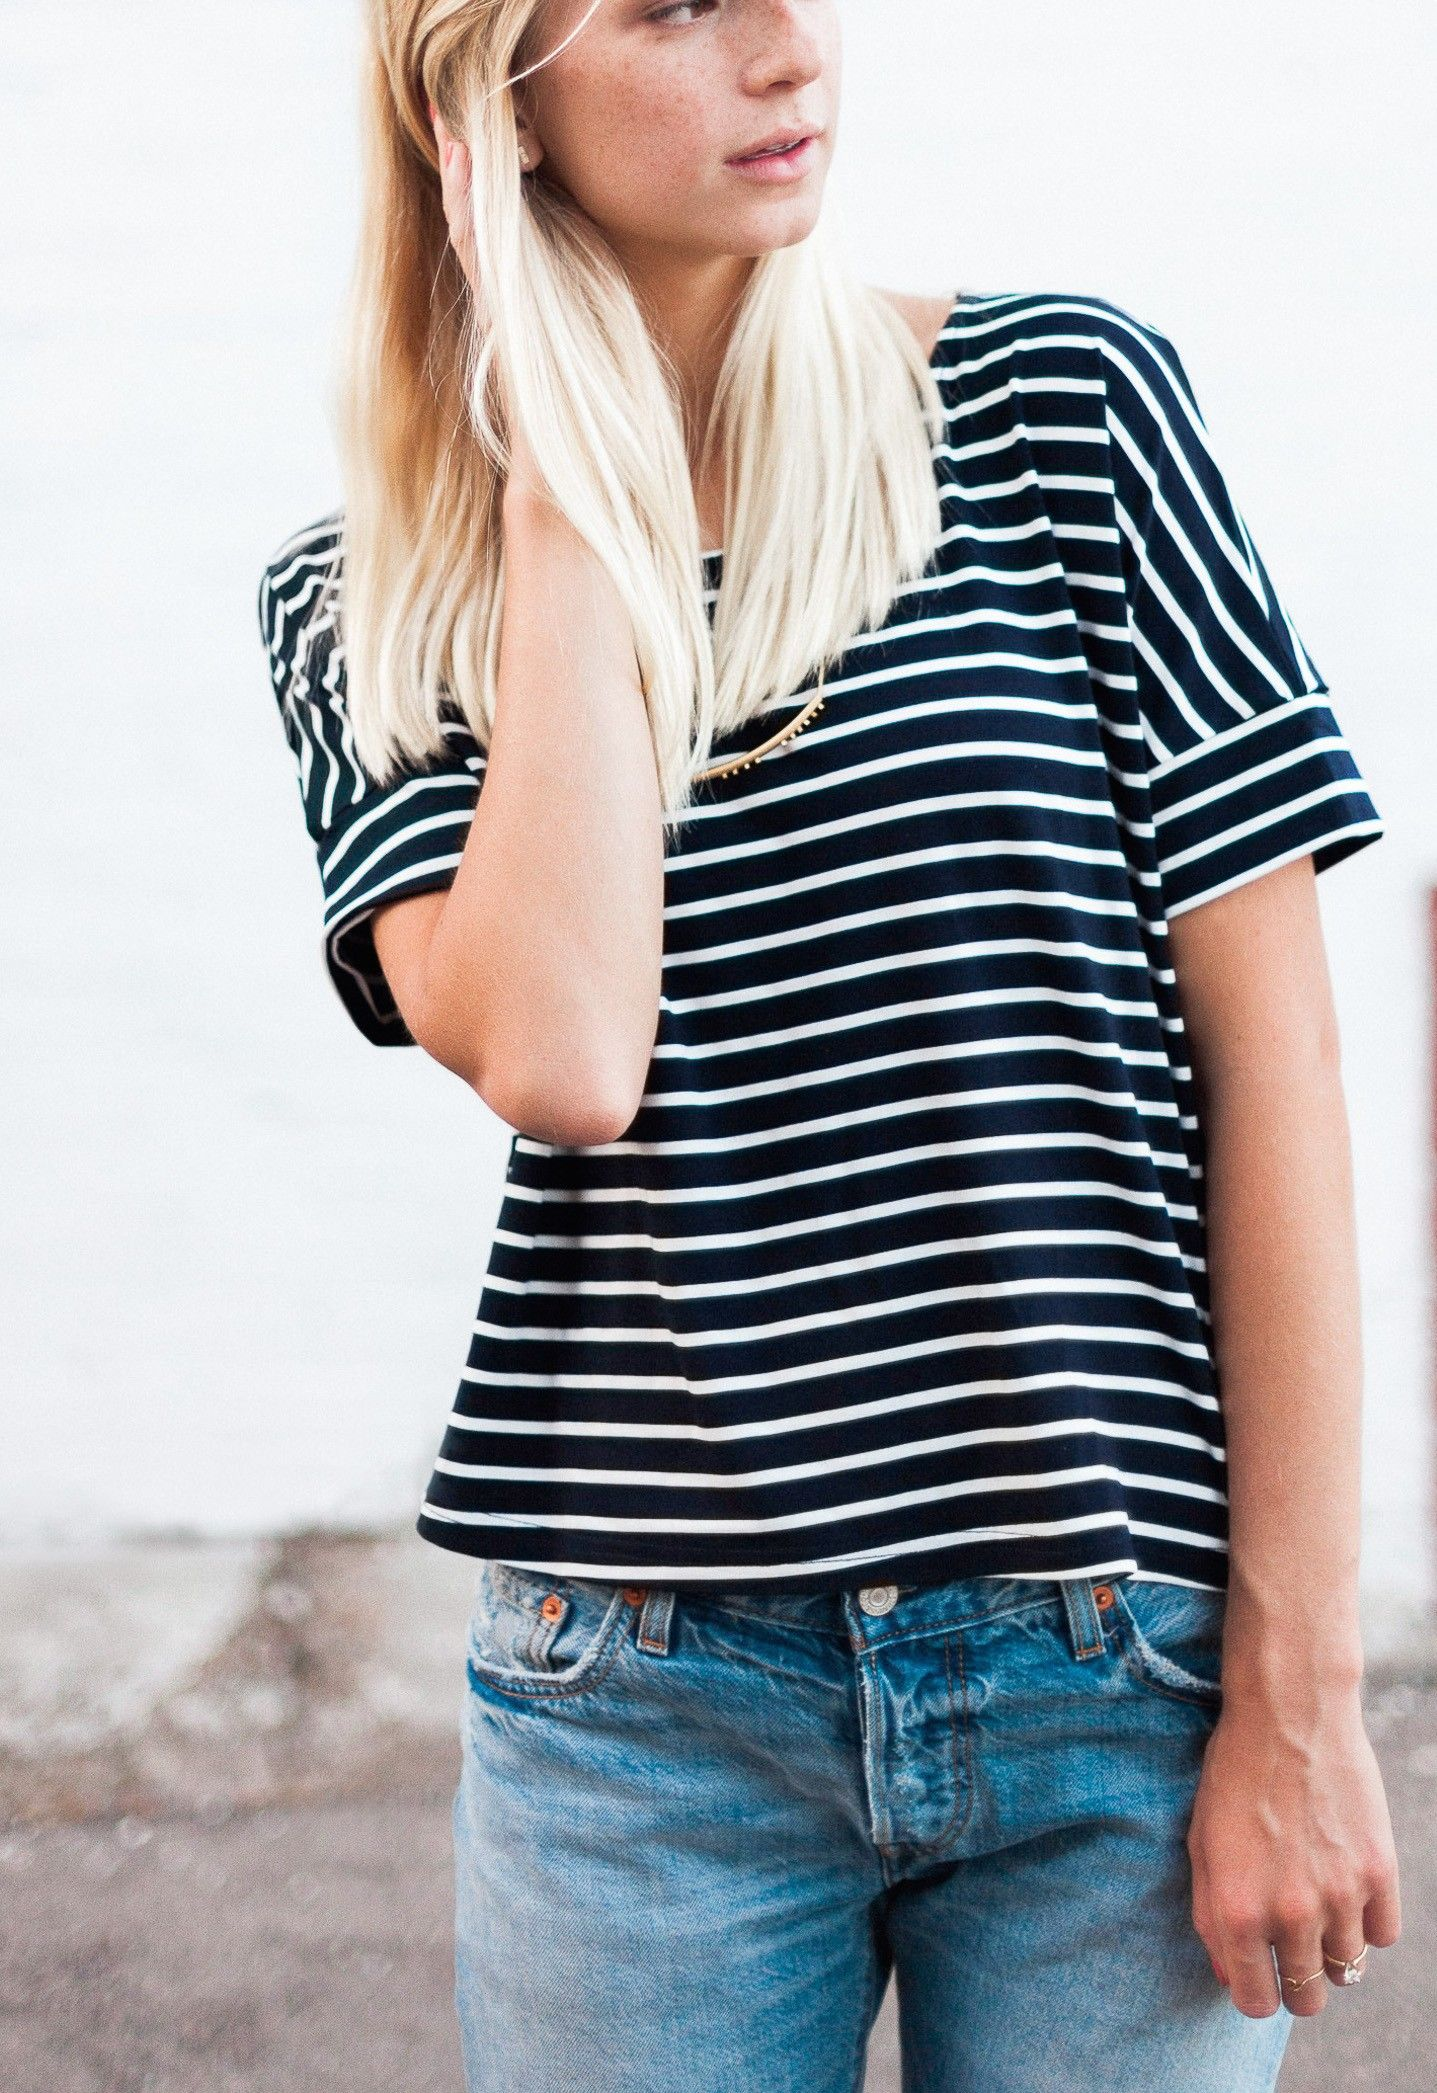 I can't get enough of tomboy style. | striped top by Choies